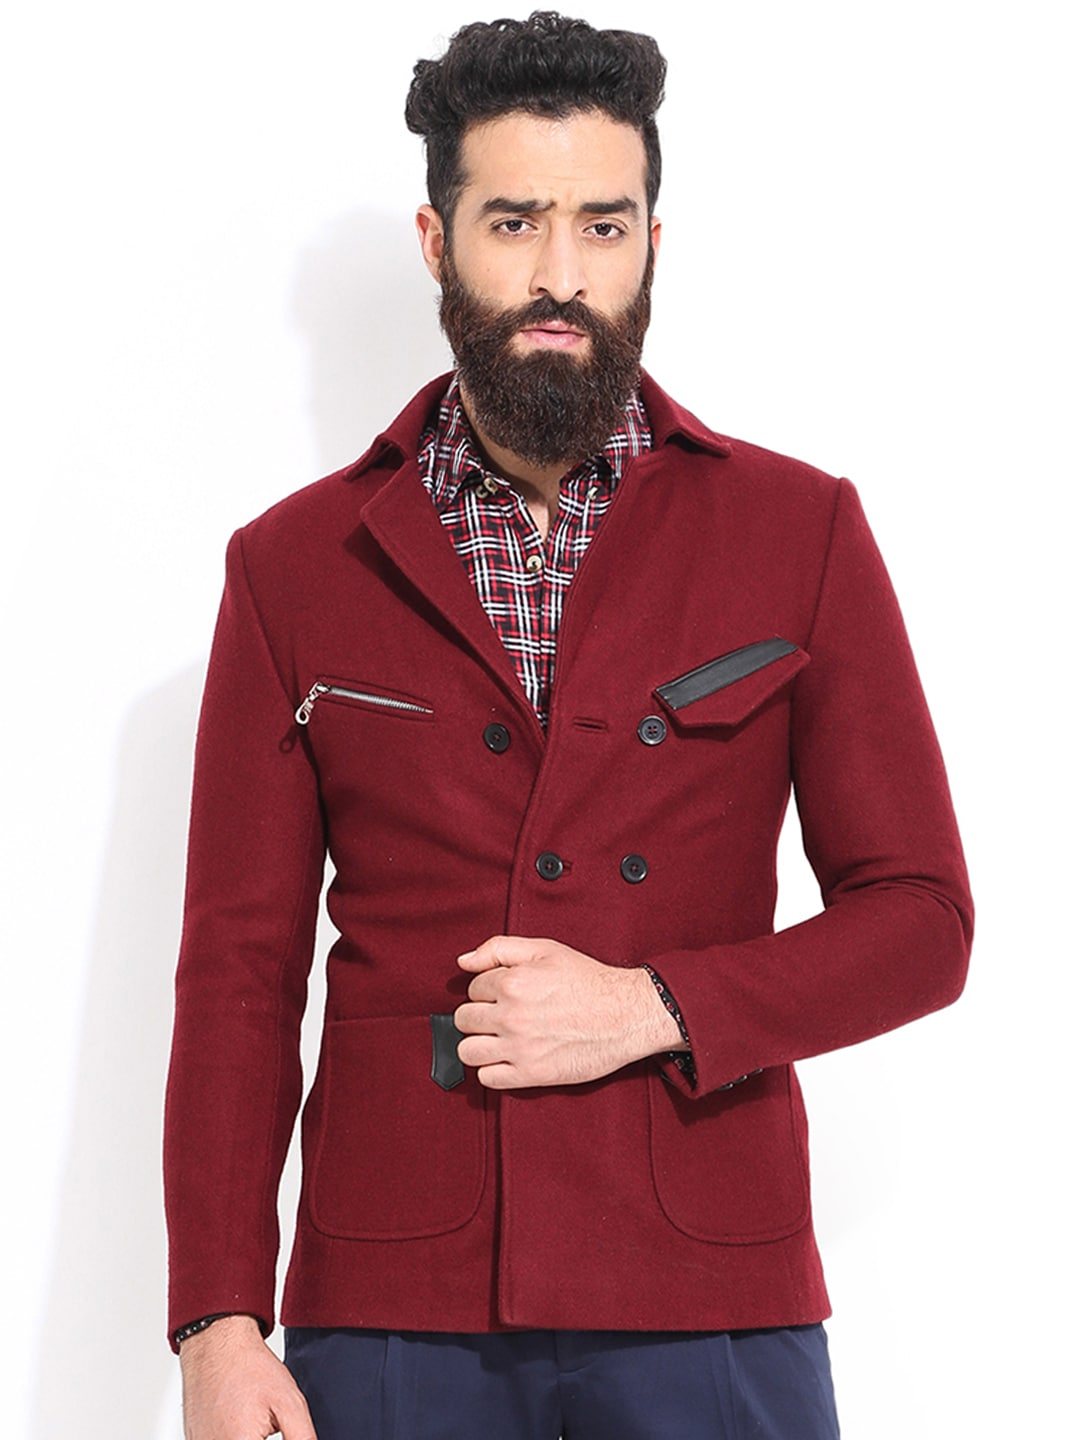 MR BUTTON Maroon Slim Fit Tailored Jacket image